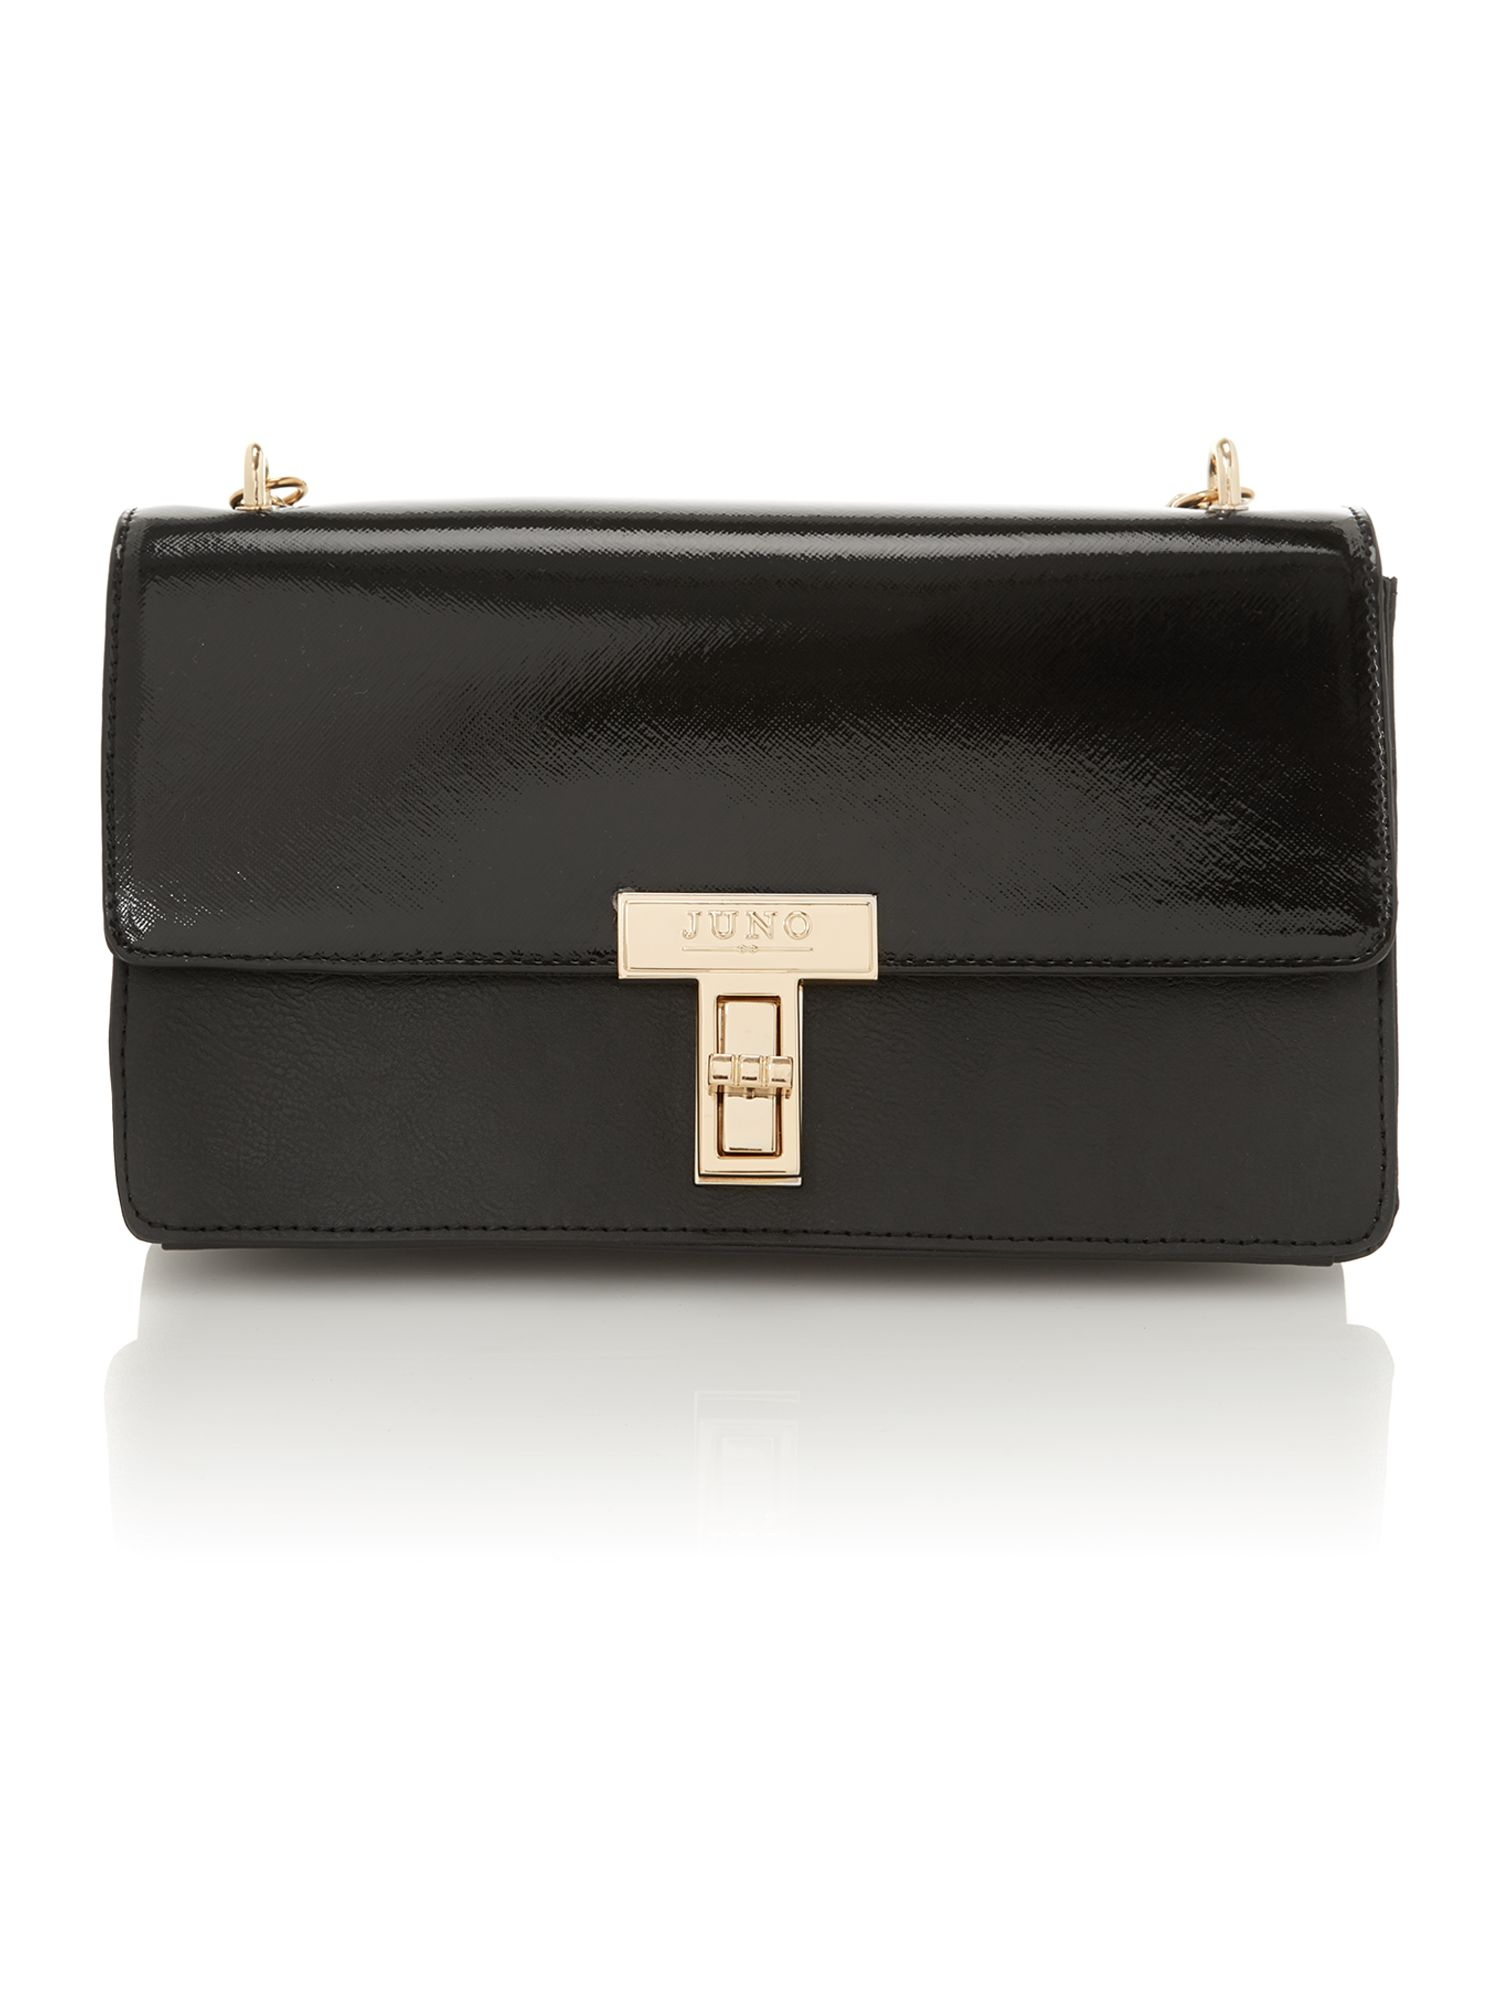 Black medium saffiano shoulder bag